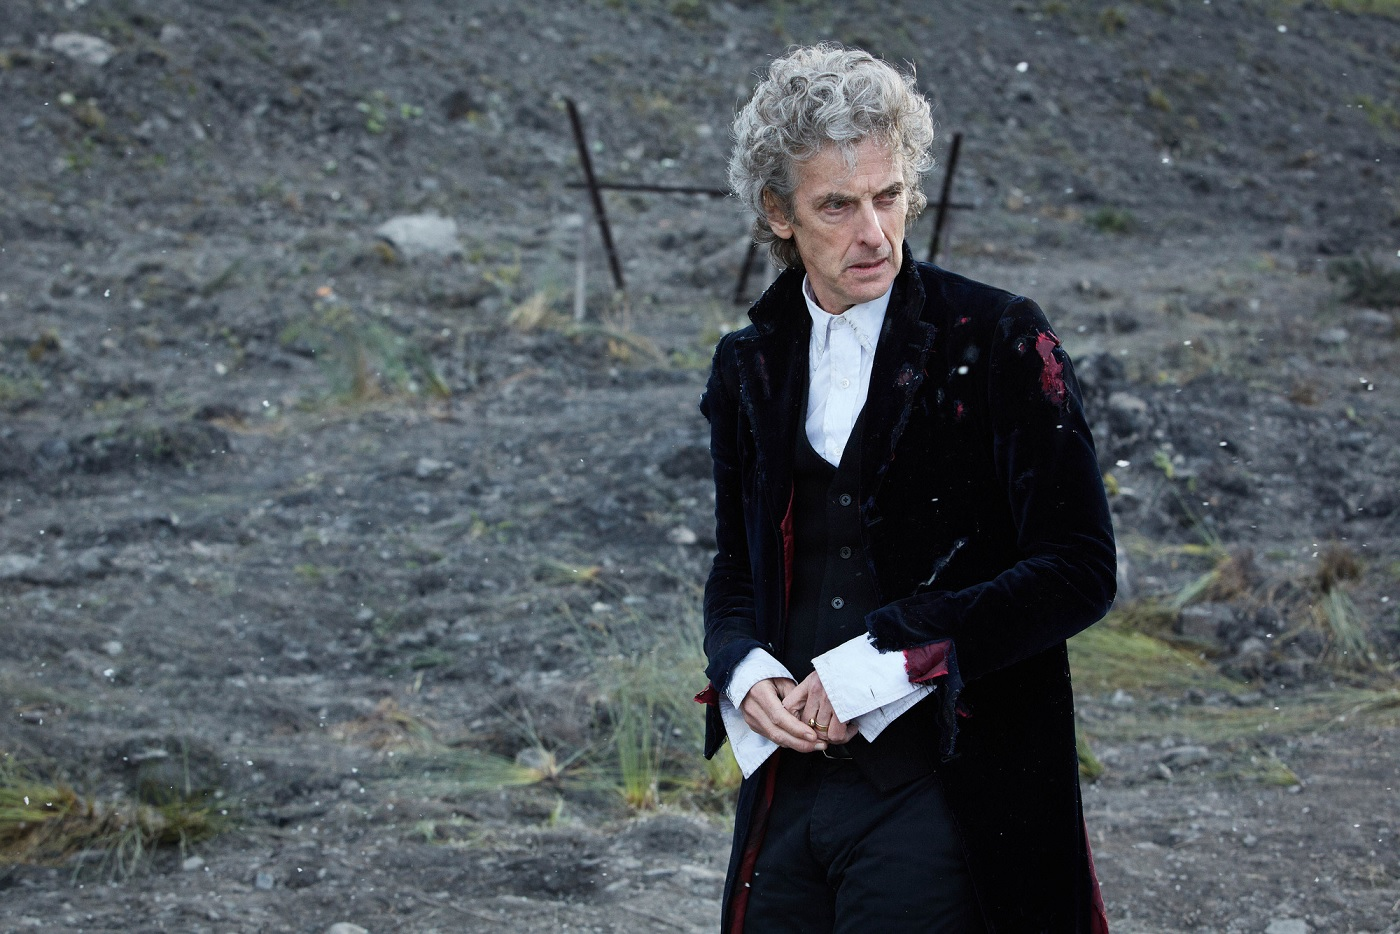 doctorwho twice buddhist parable